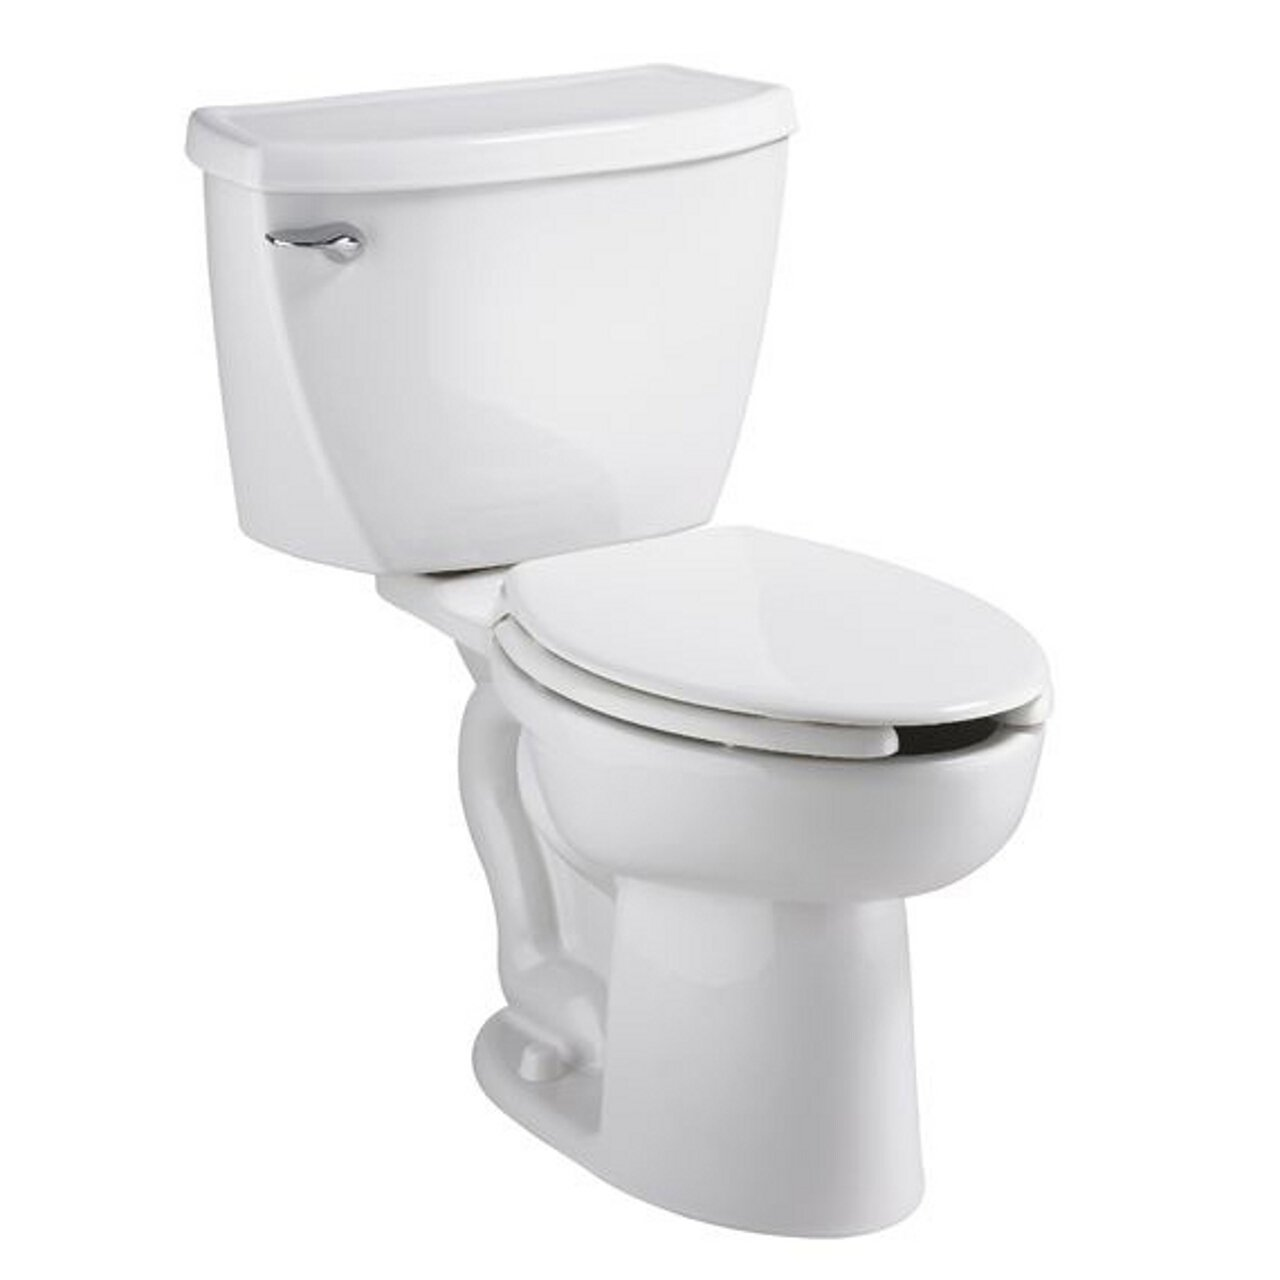 American Standard 2462.100.020 Cadet Flowise Pressure Assisted Elongated Two-Piece Toilet with EverClean, White